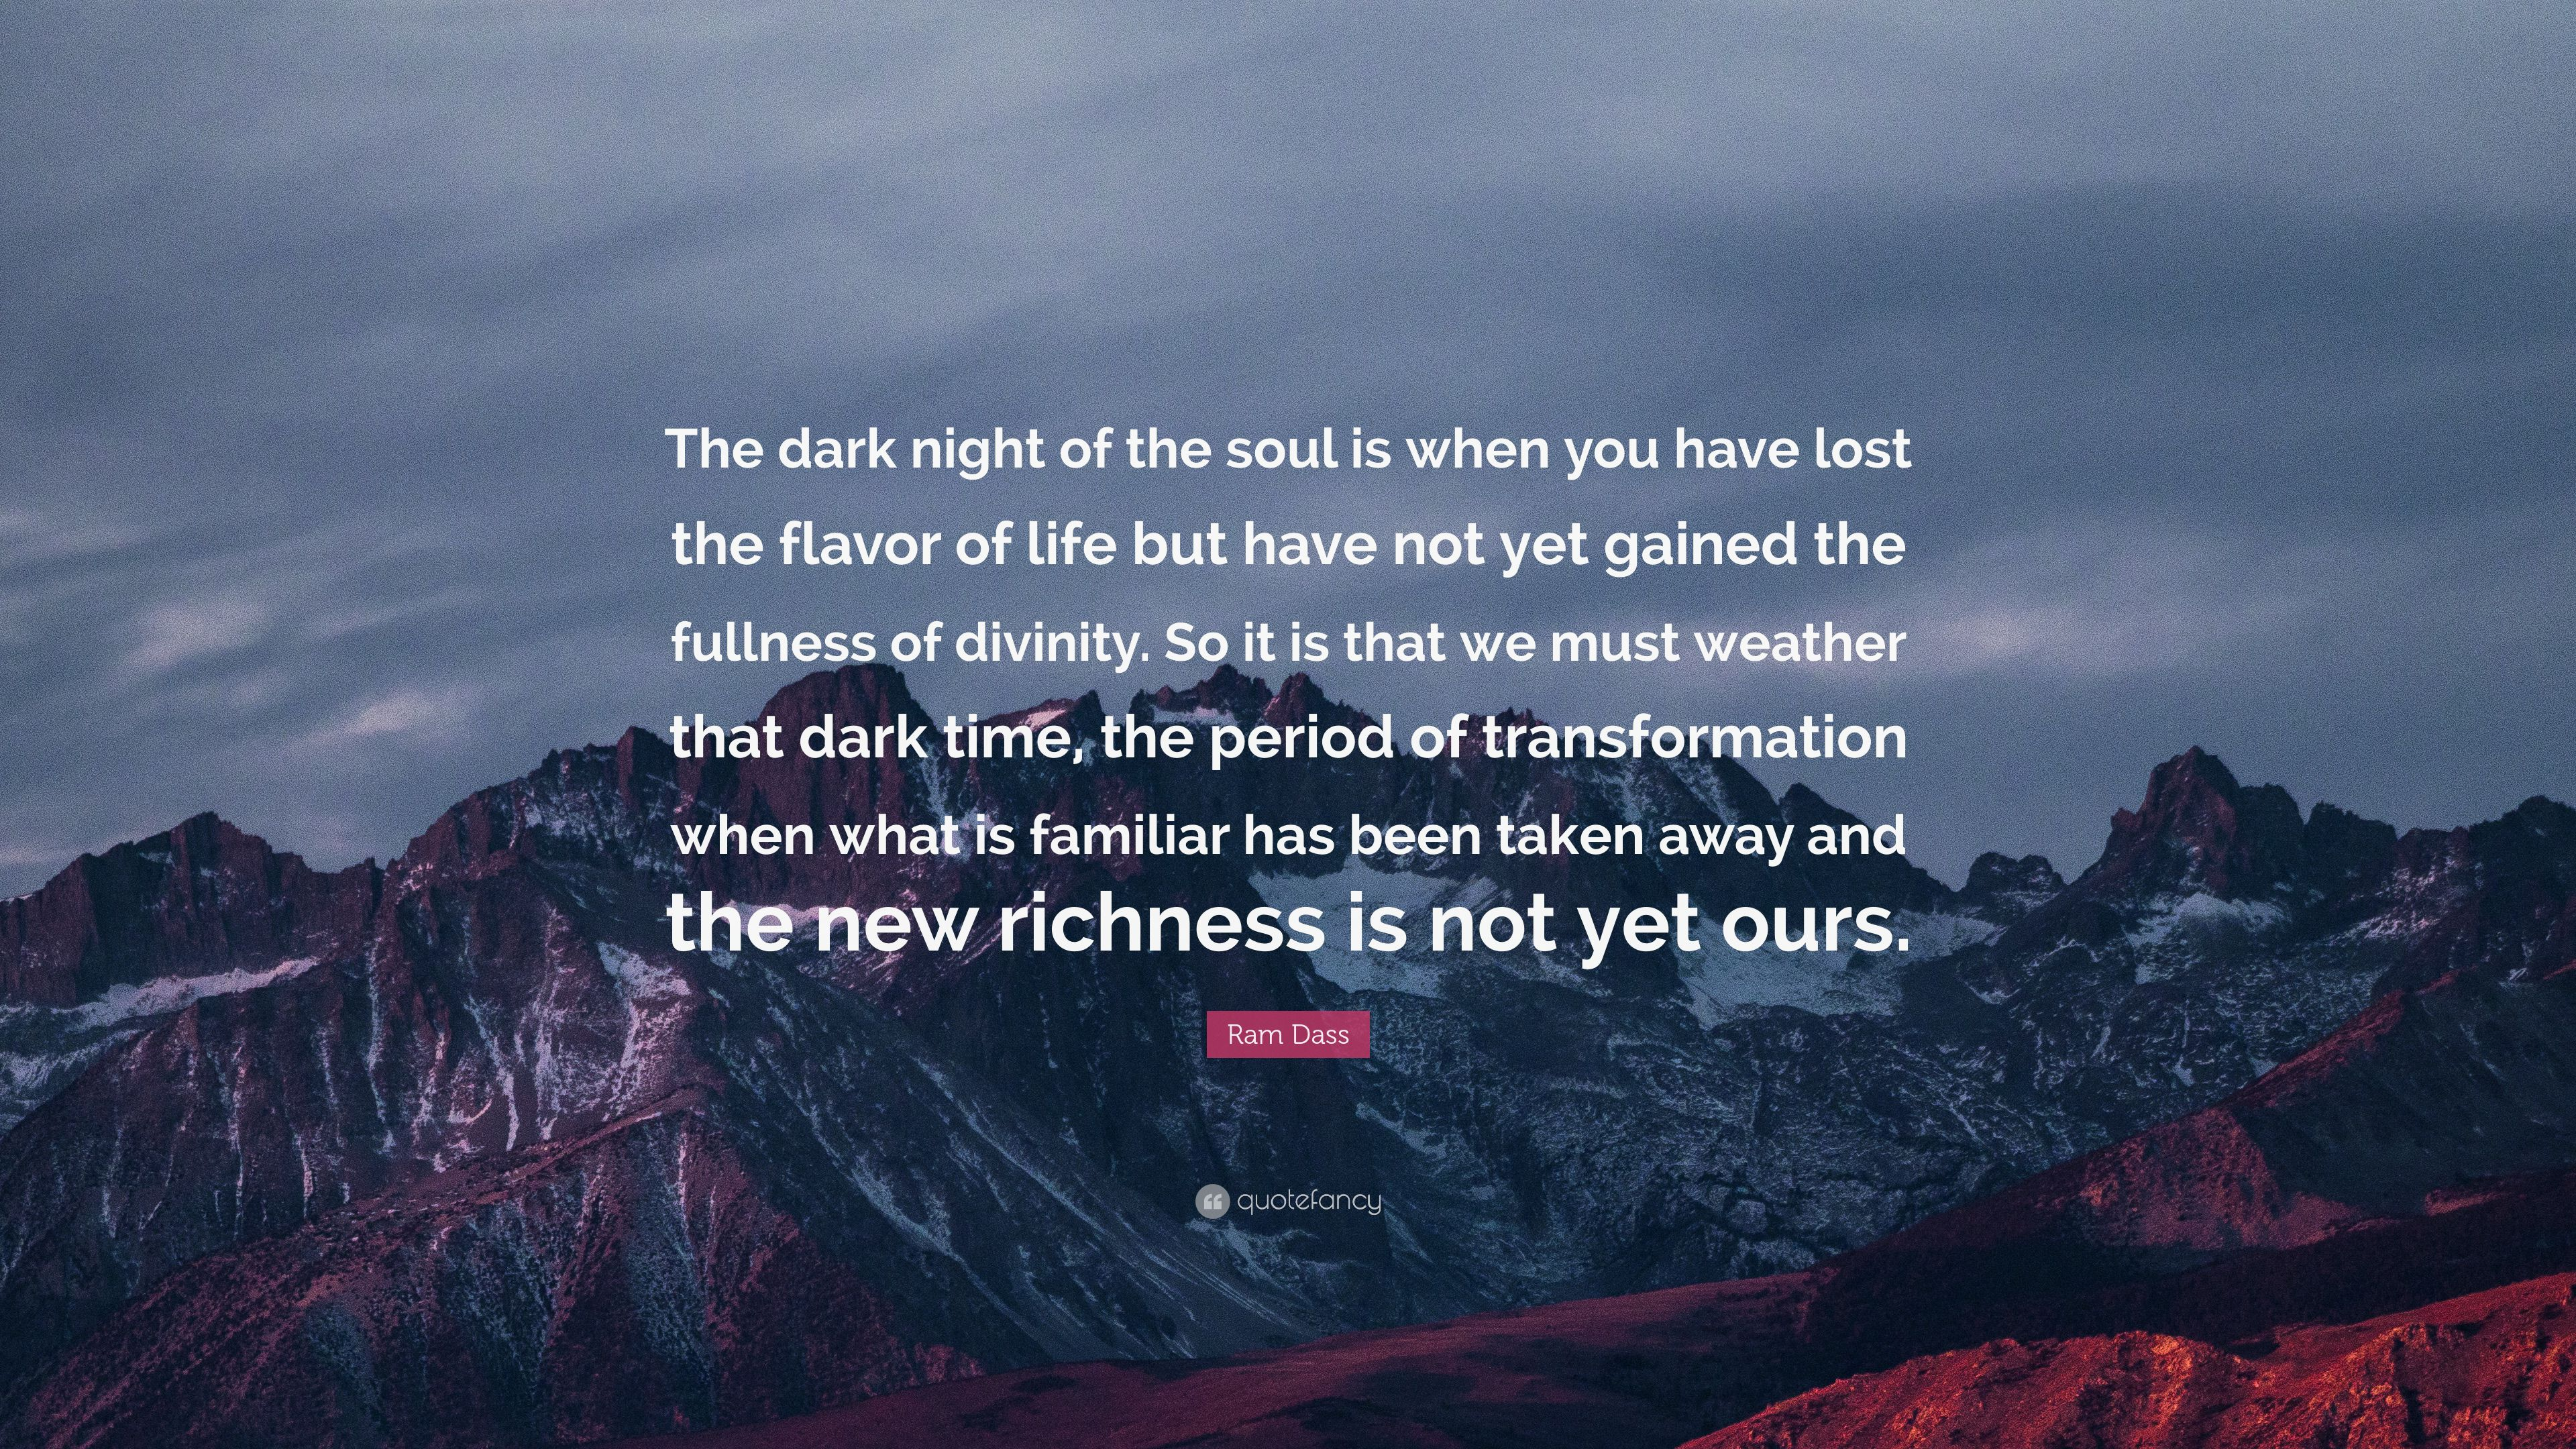 Zen Quote Wallpapers Ram Dass Quote The Dark Night Of The Soul Is When You